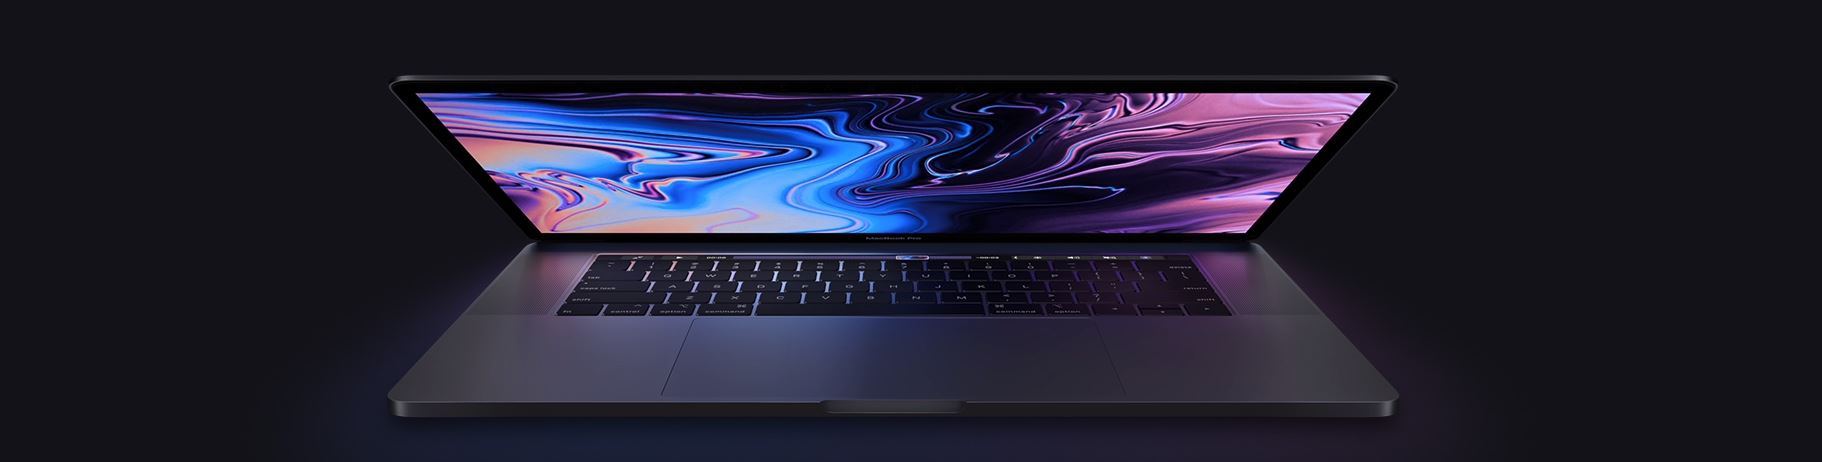 Macbook Custome Pro 2018